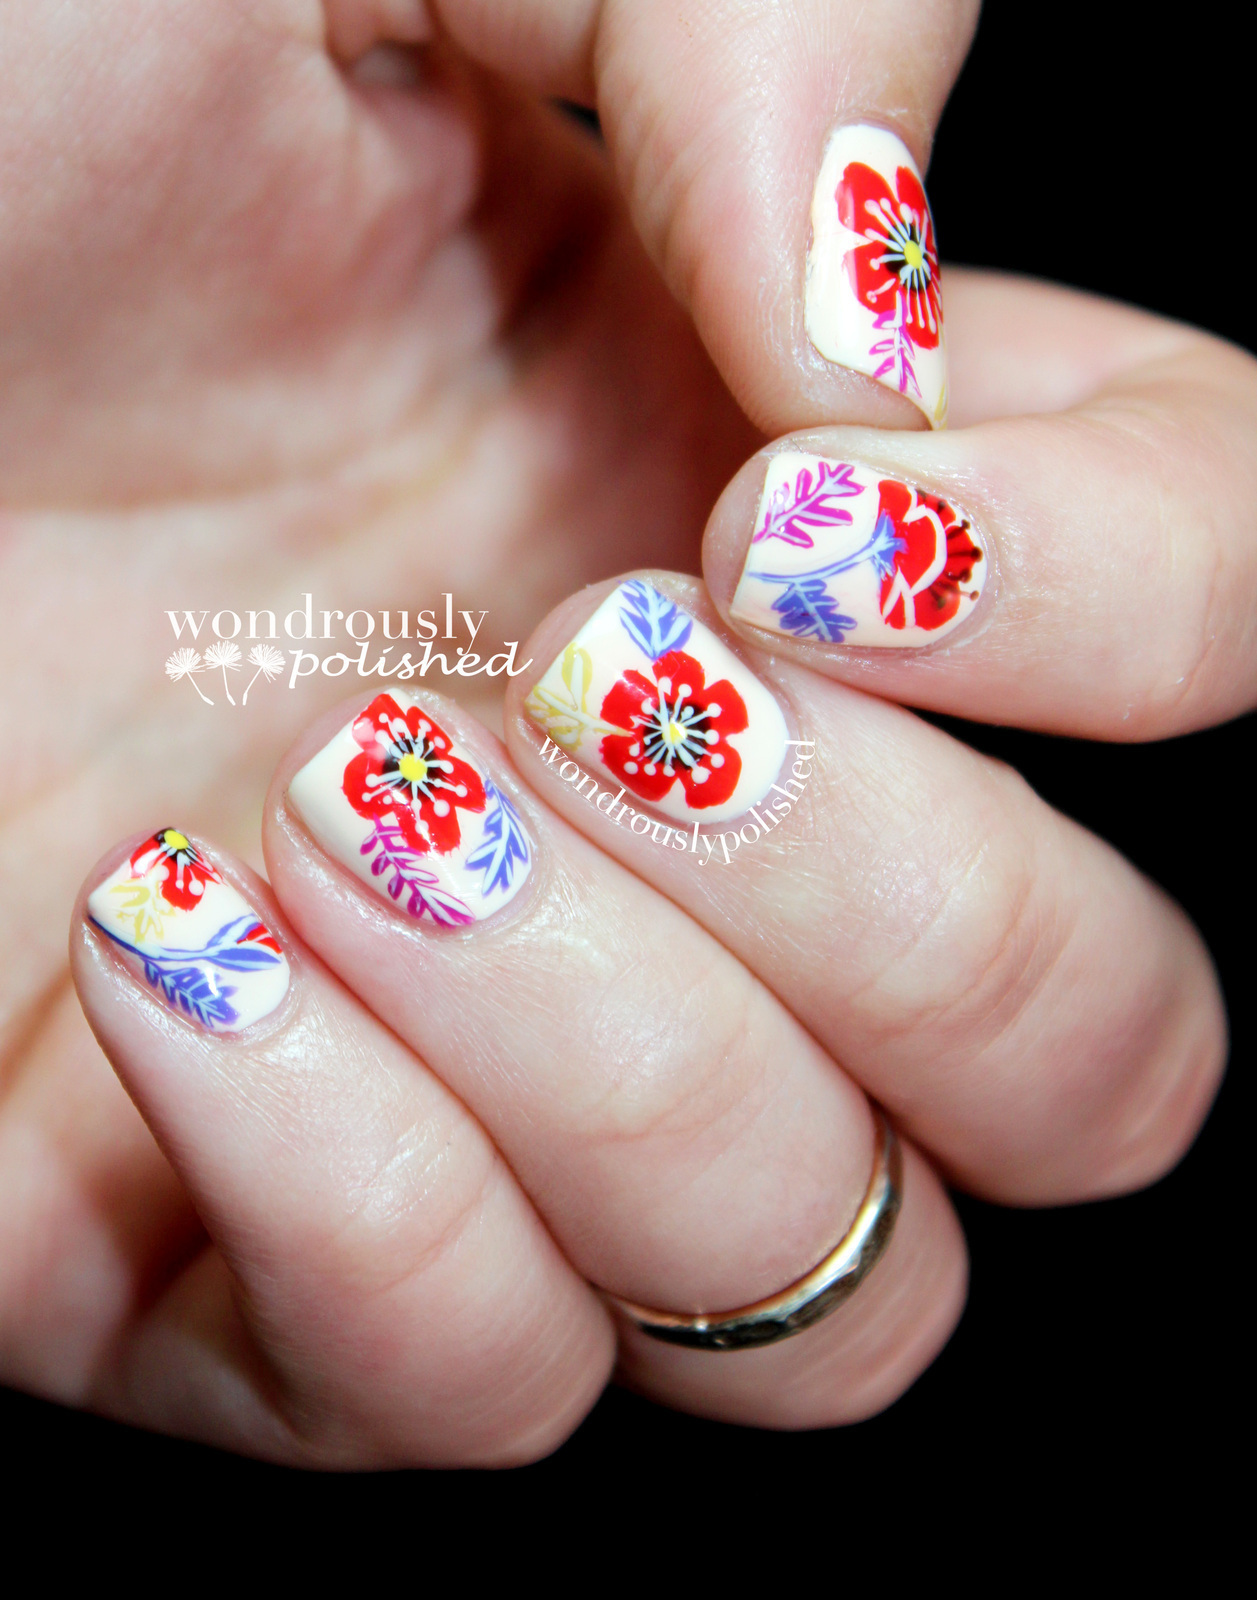 Floral Manicures For Spring And: Floral Nail Art · How To Paint Patterned Nail Art · Nail